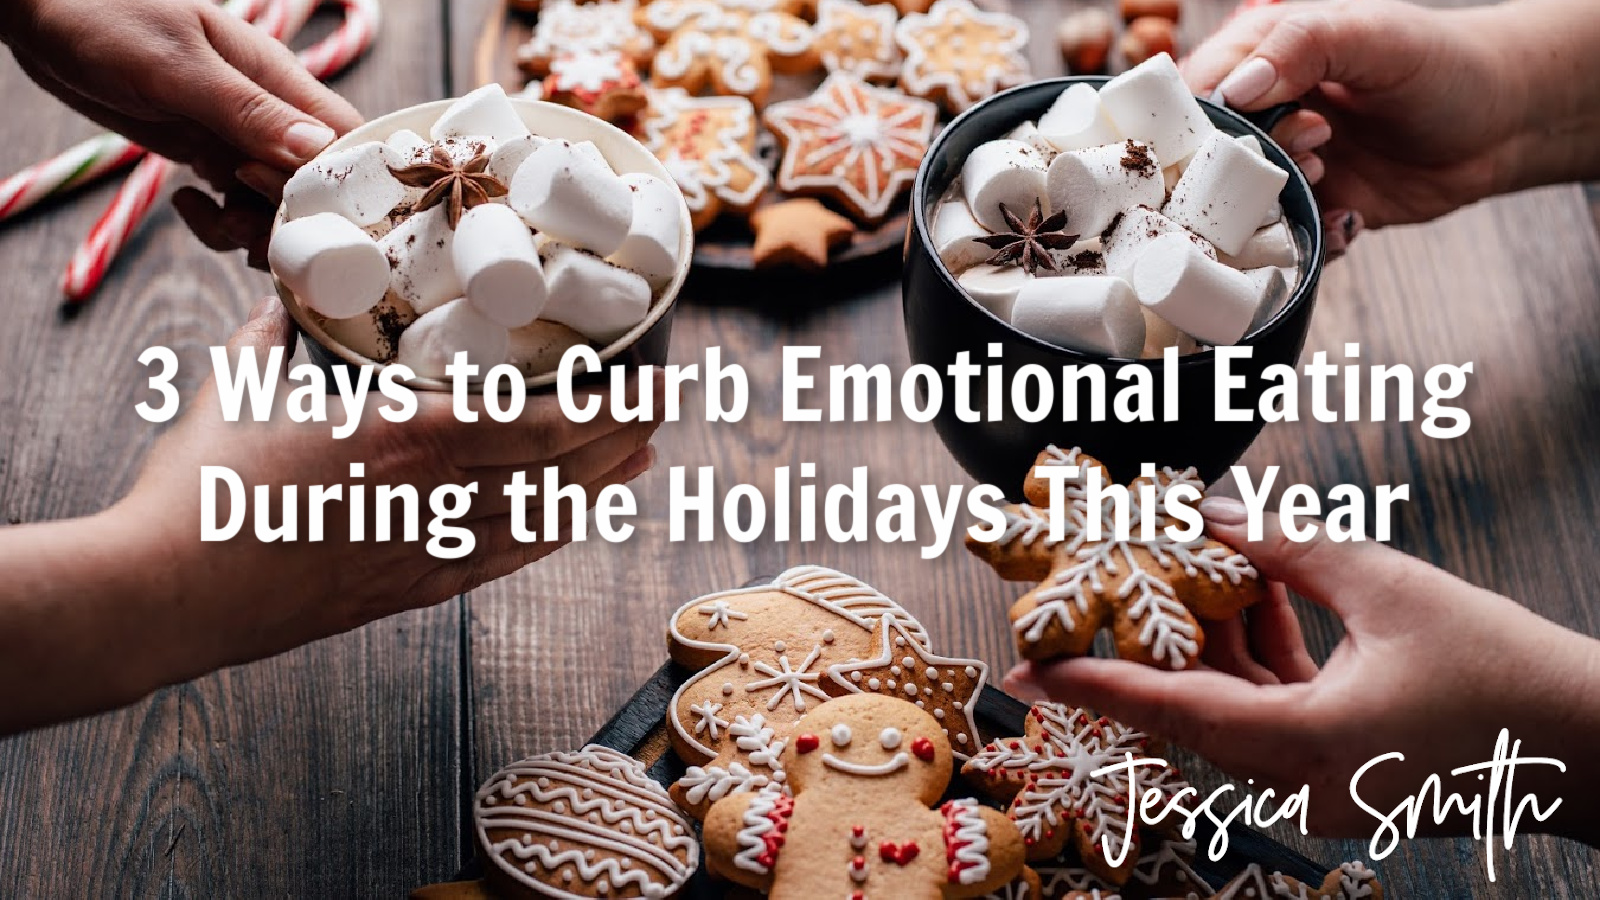 3 Ways to Curb Emotional Eating During the Holidays This Year